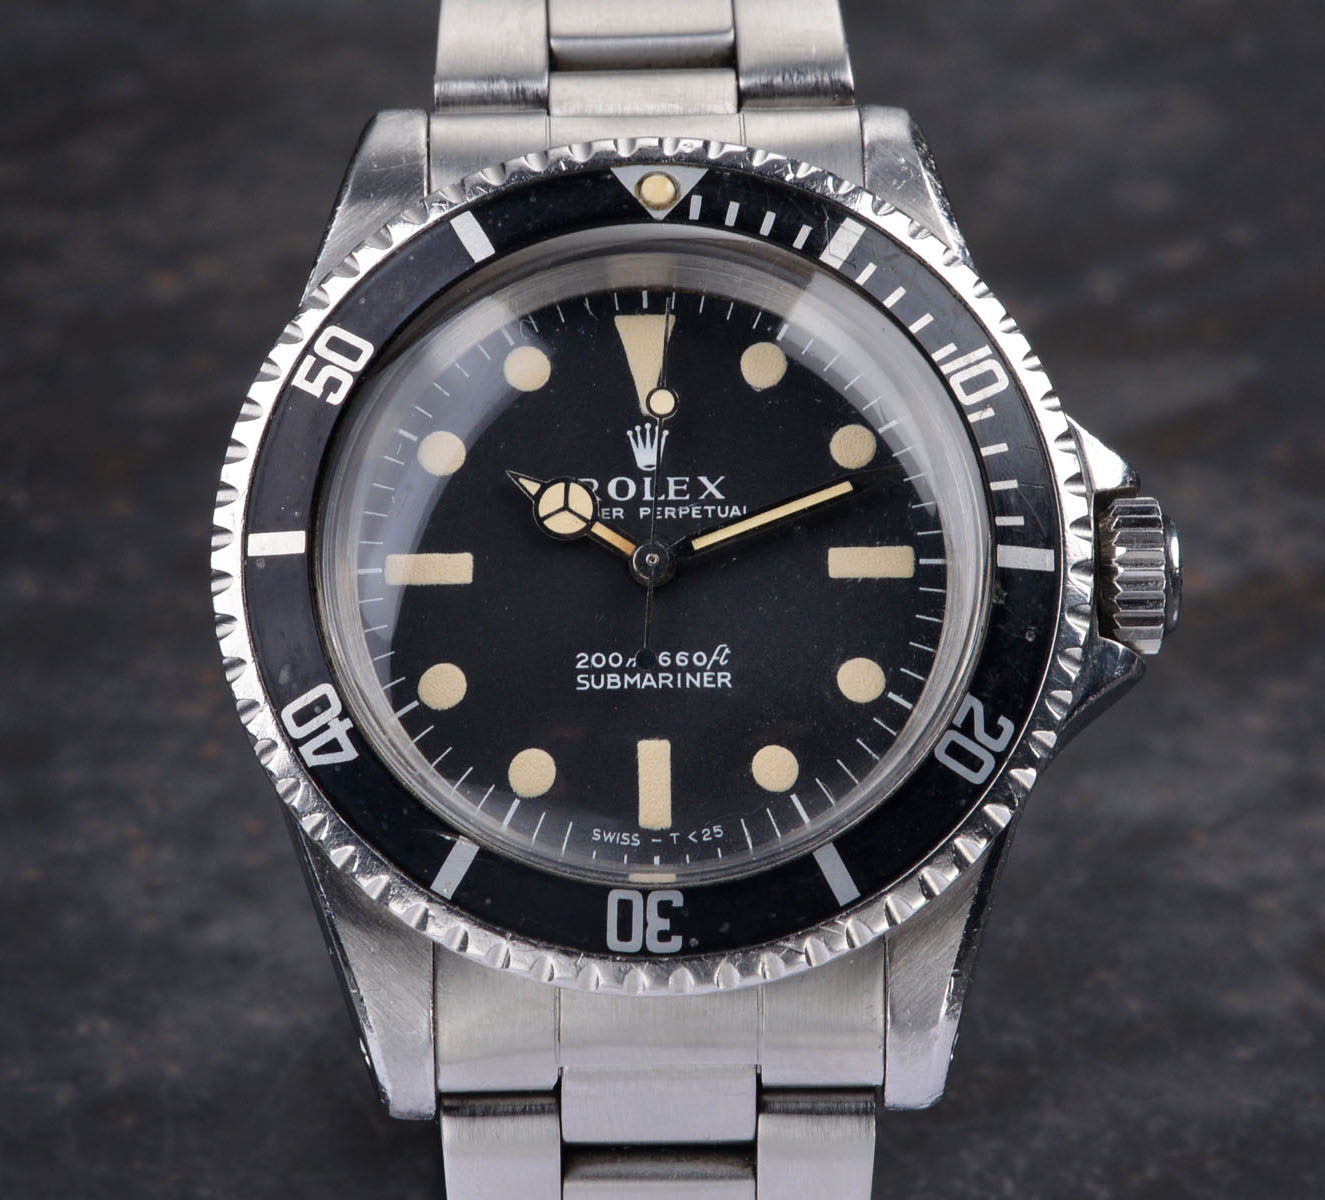 Vintage Rolex 5513 Submariner Love - Mtr's first dial - Article at Bulang and Sons